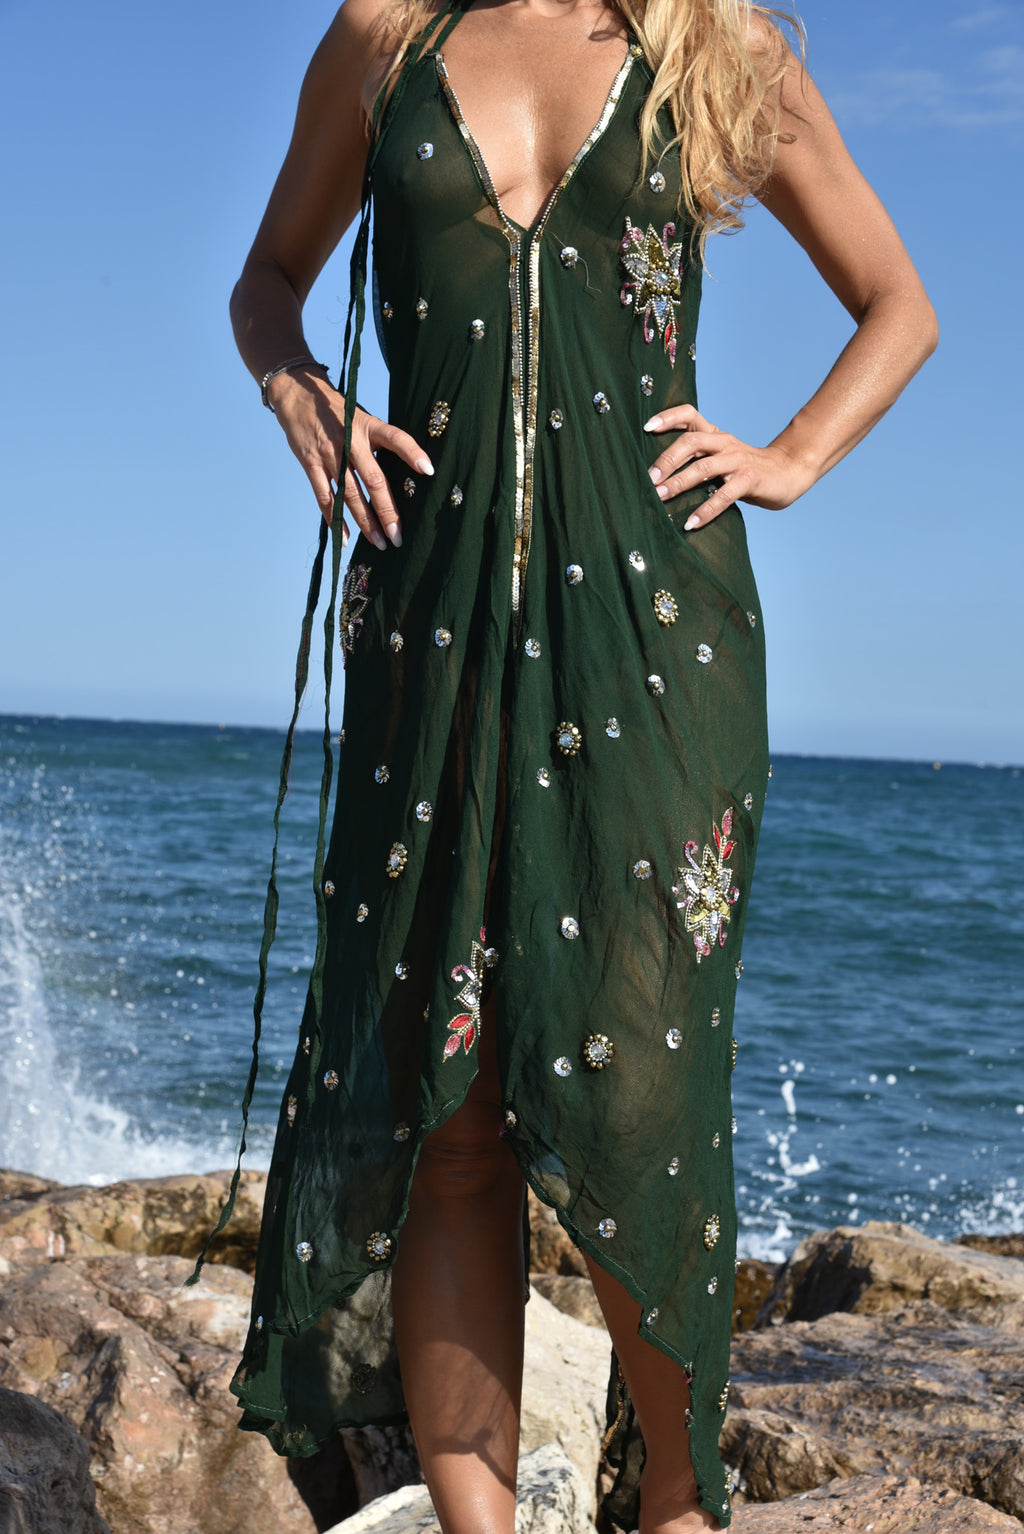 Robe Verte by AVA Precious Goods